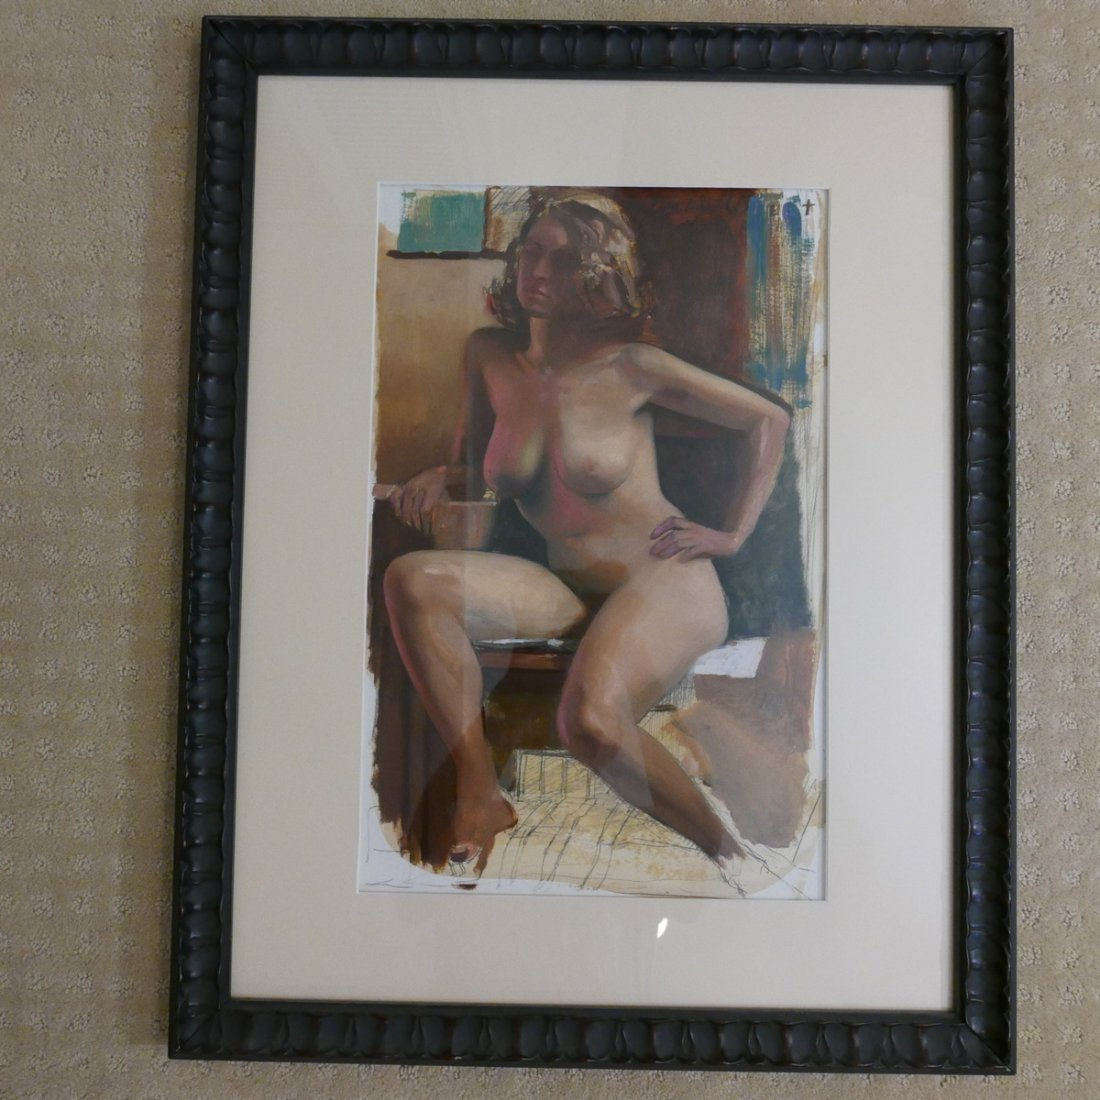 NUDE WATERCOLOR PAINTING, FRAMED